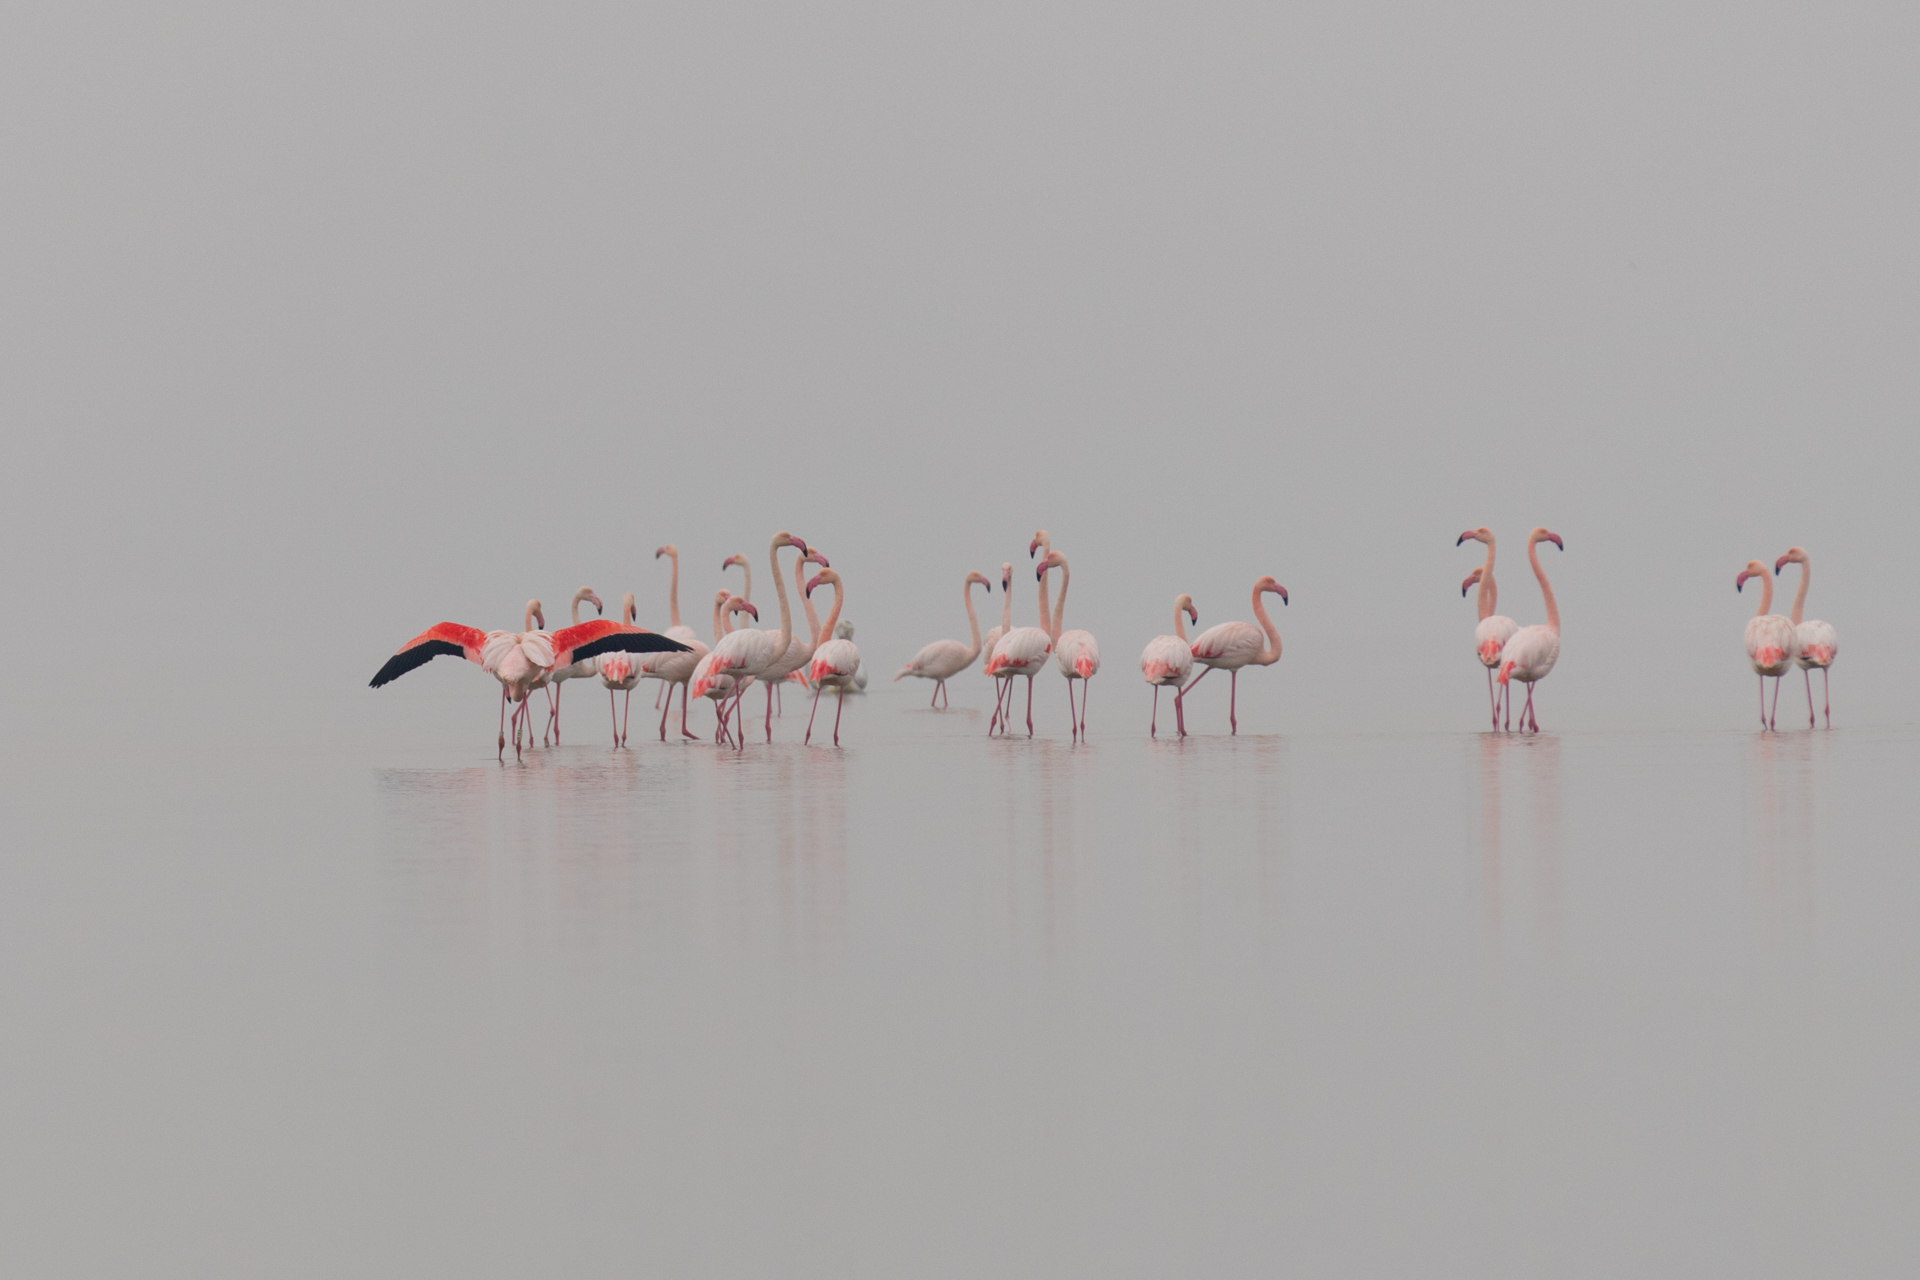 Flamingi / Flamingos, Kerkini Lake 2018 - 2